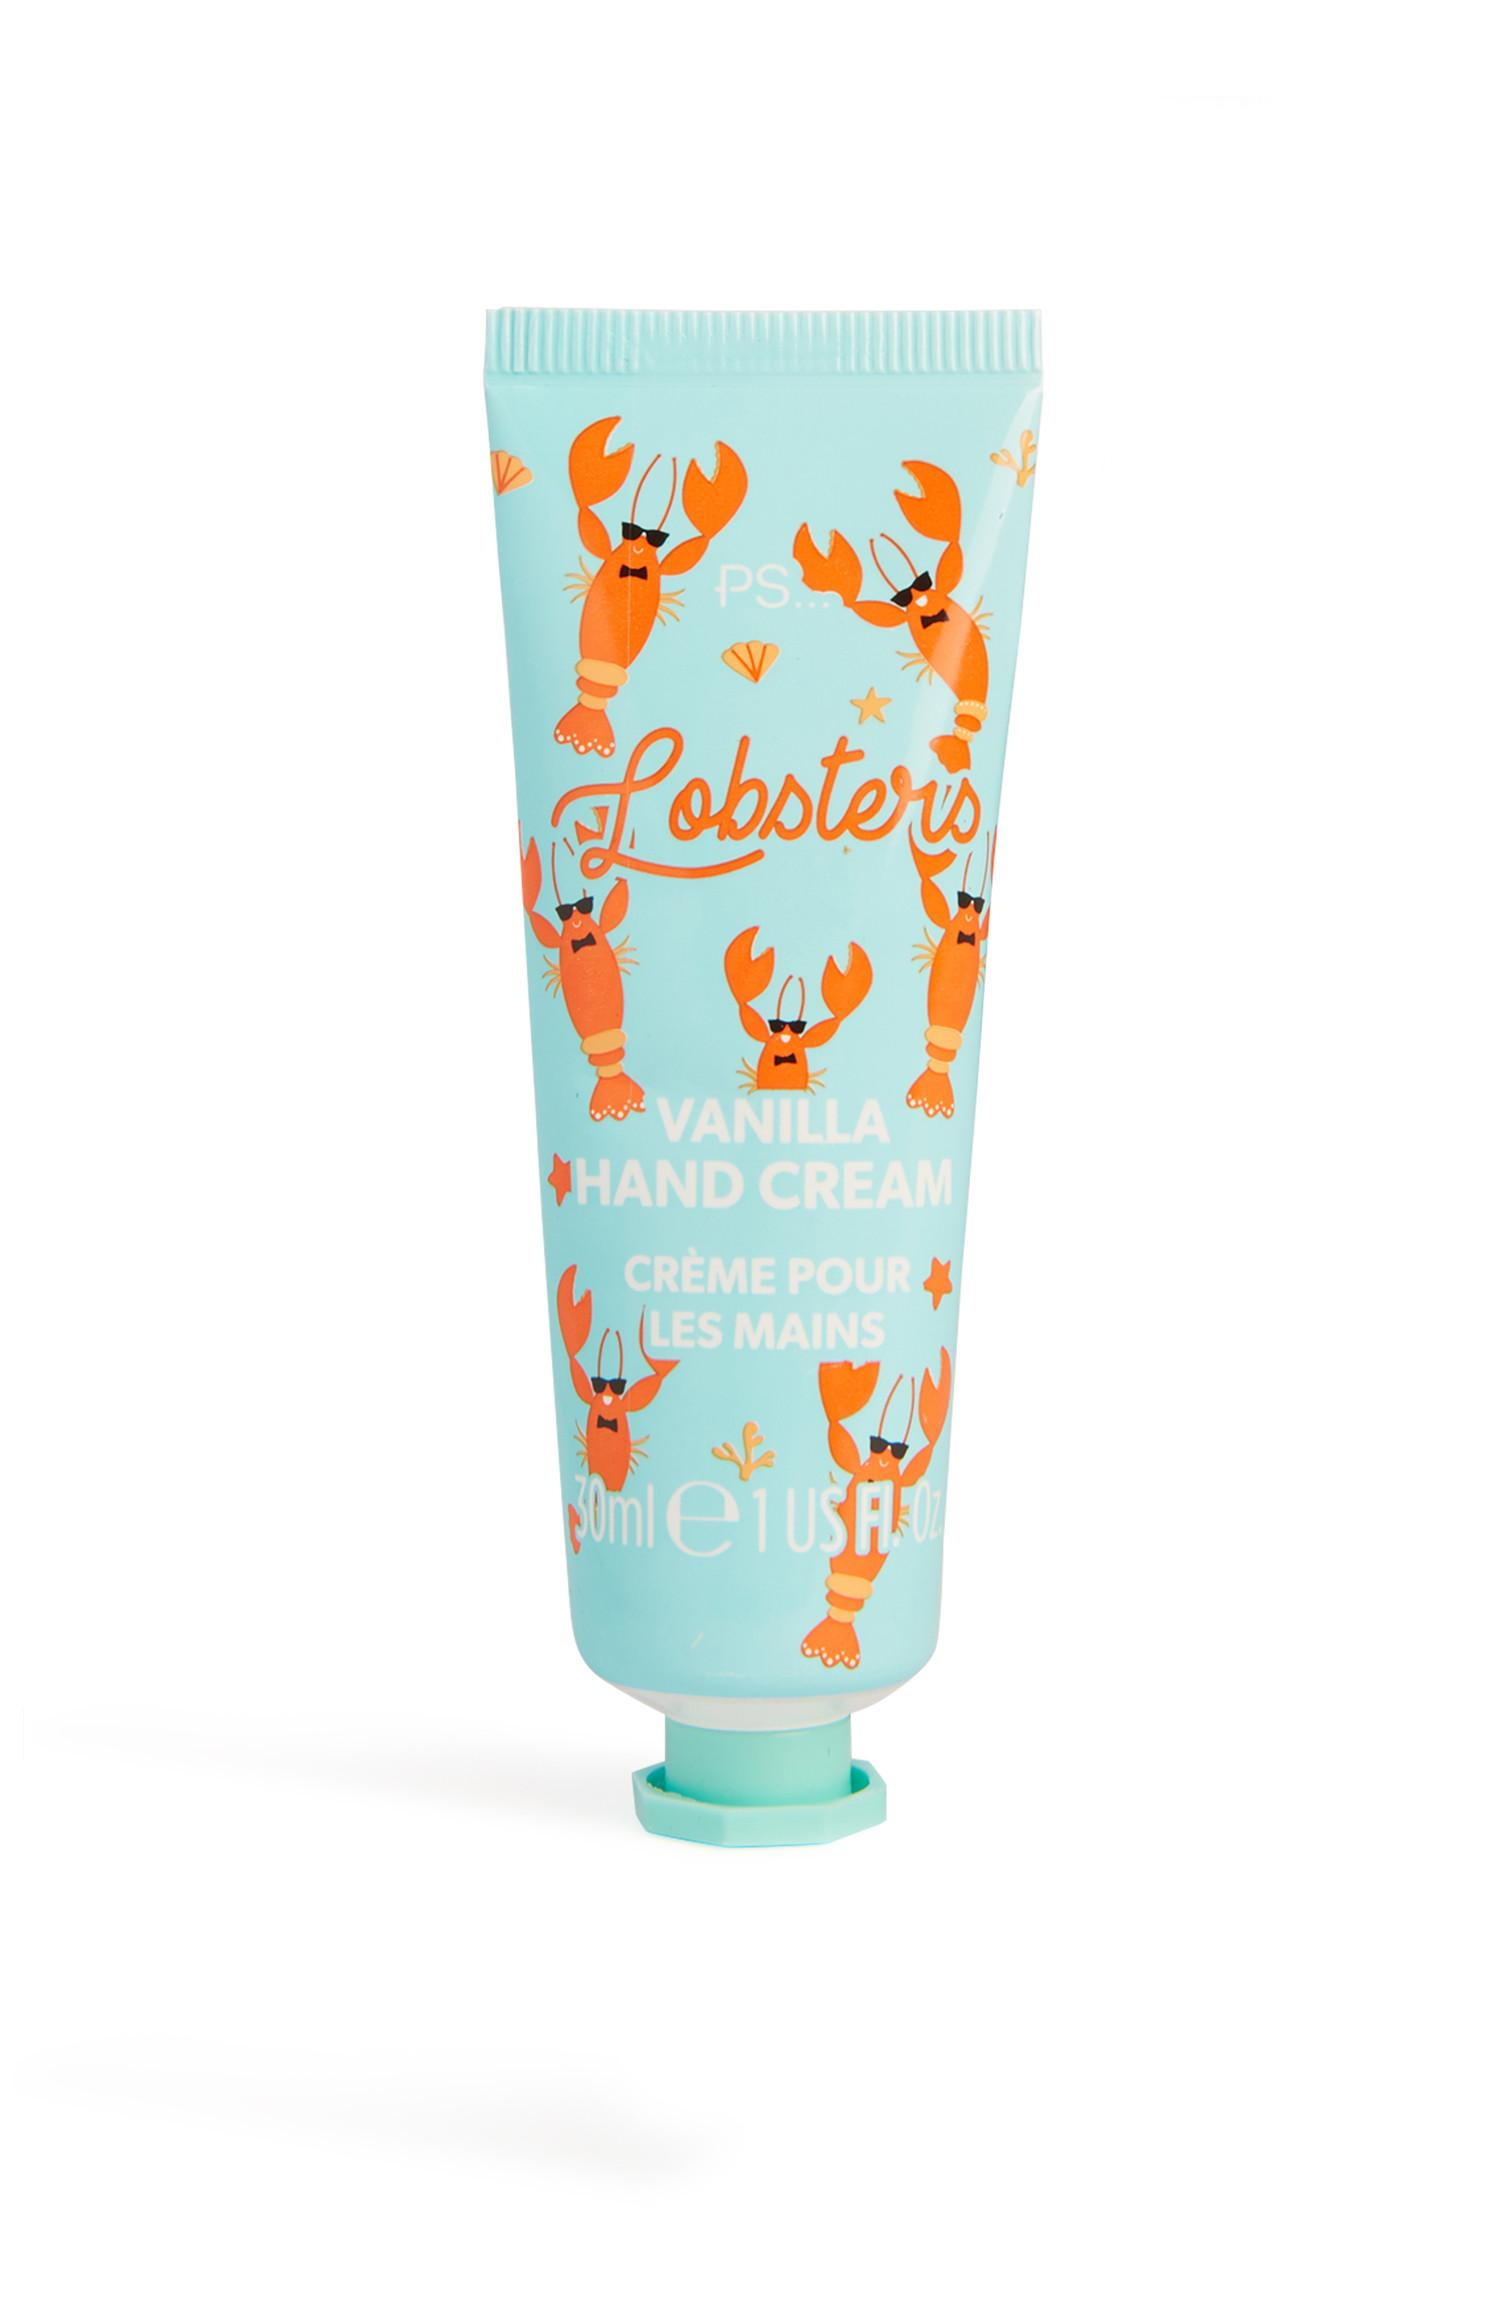 Vanilla Handcream